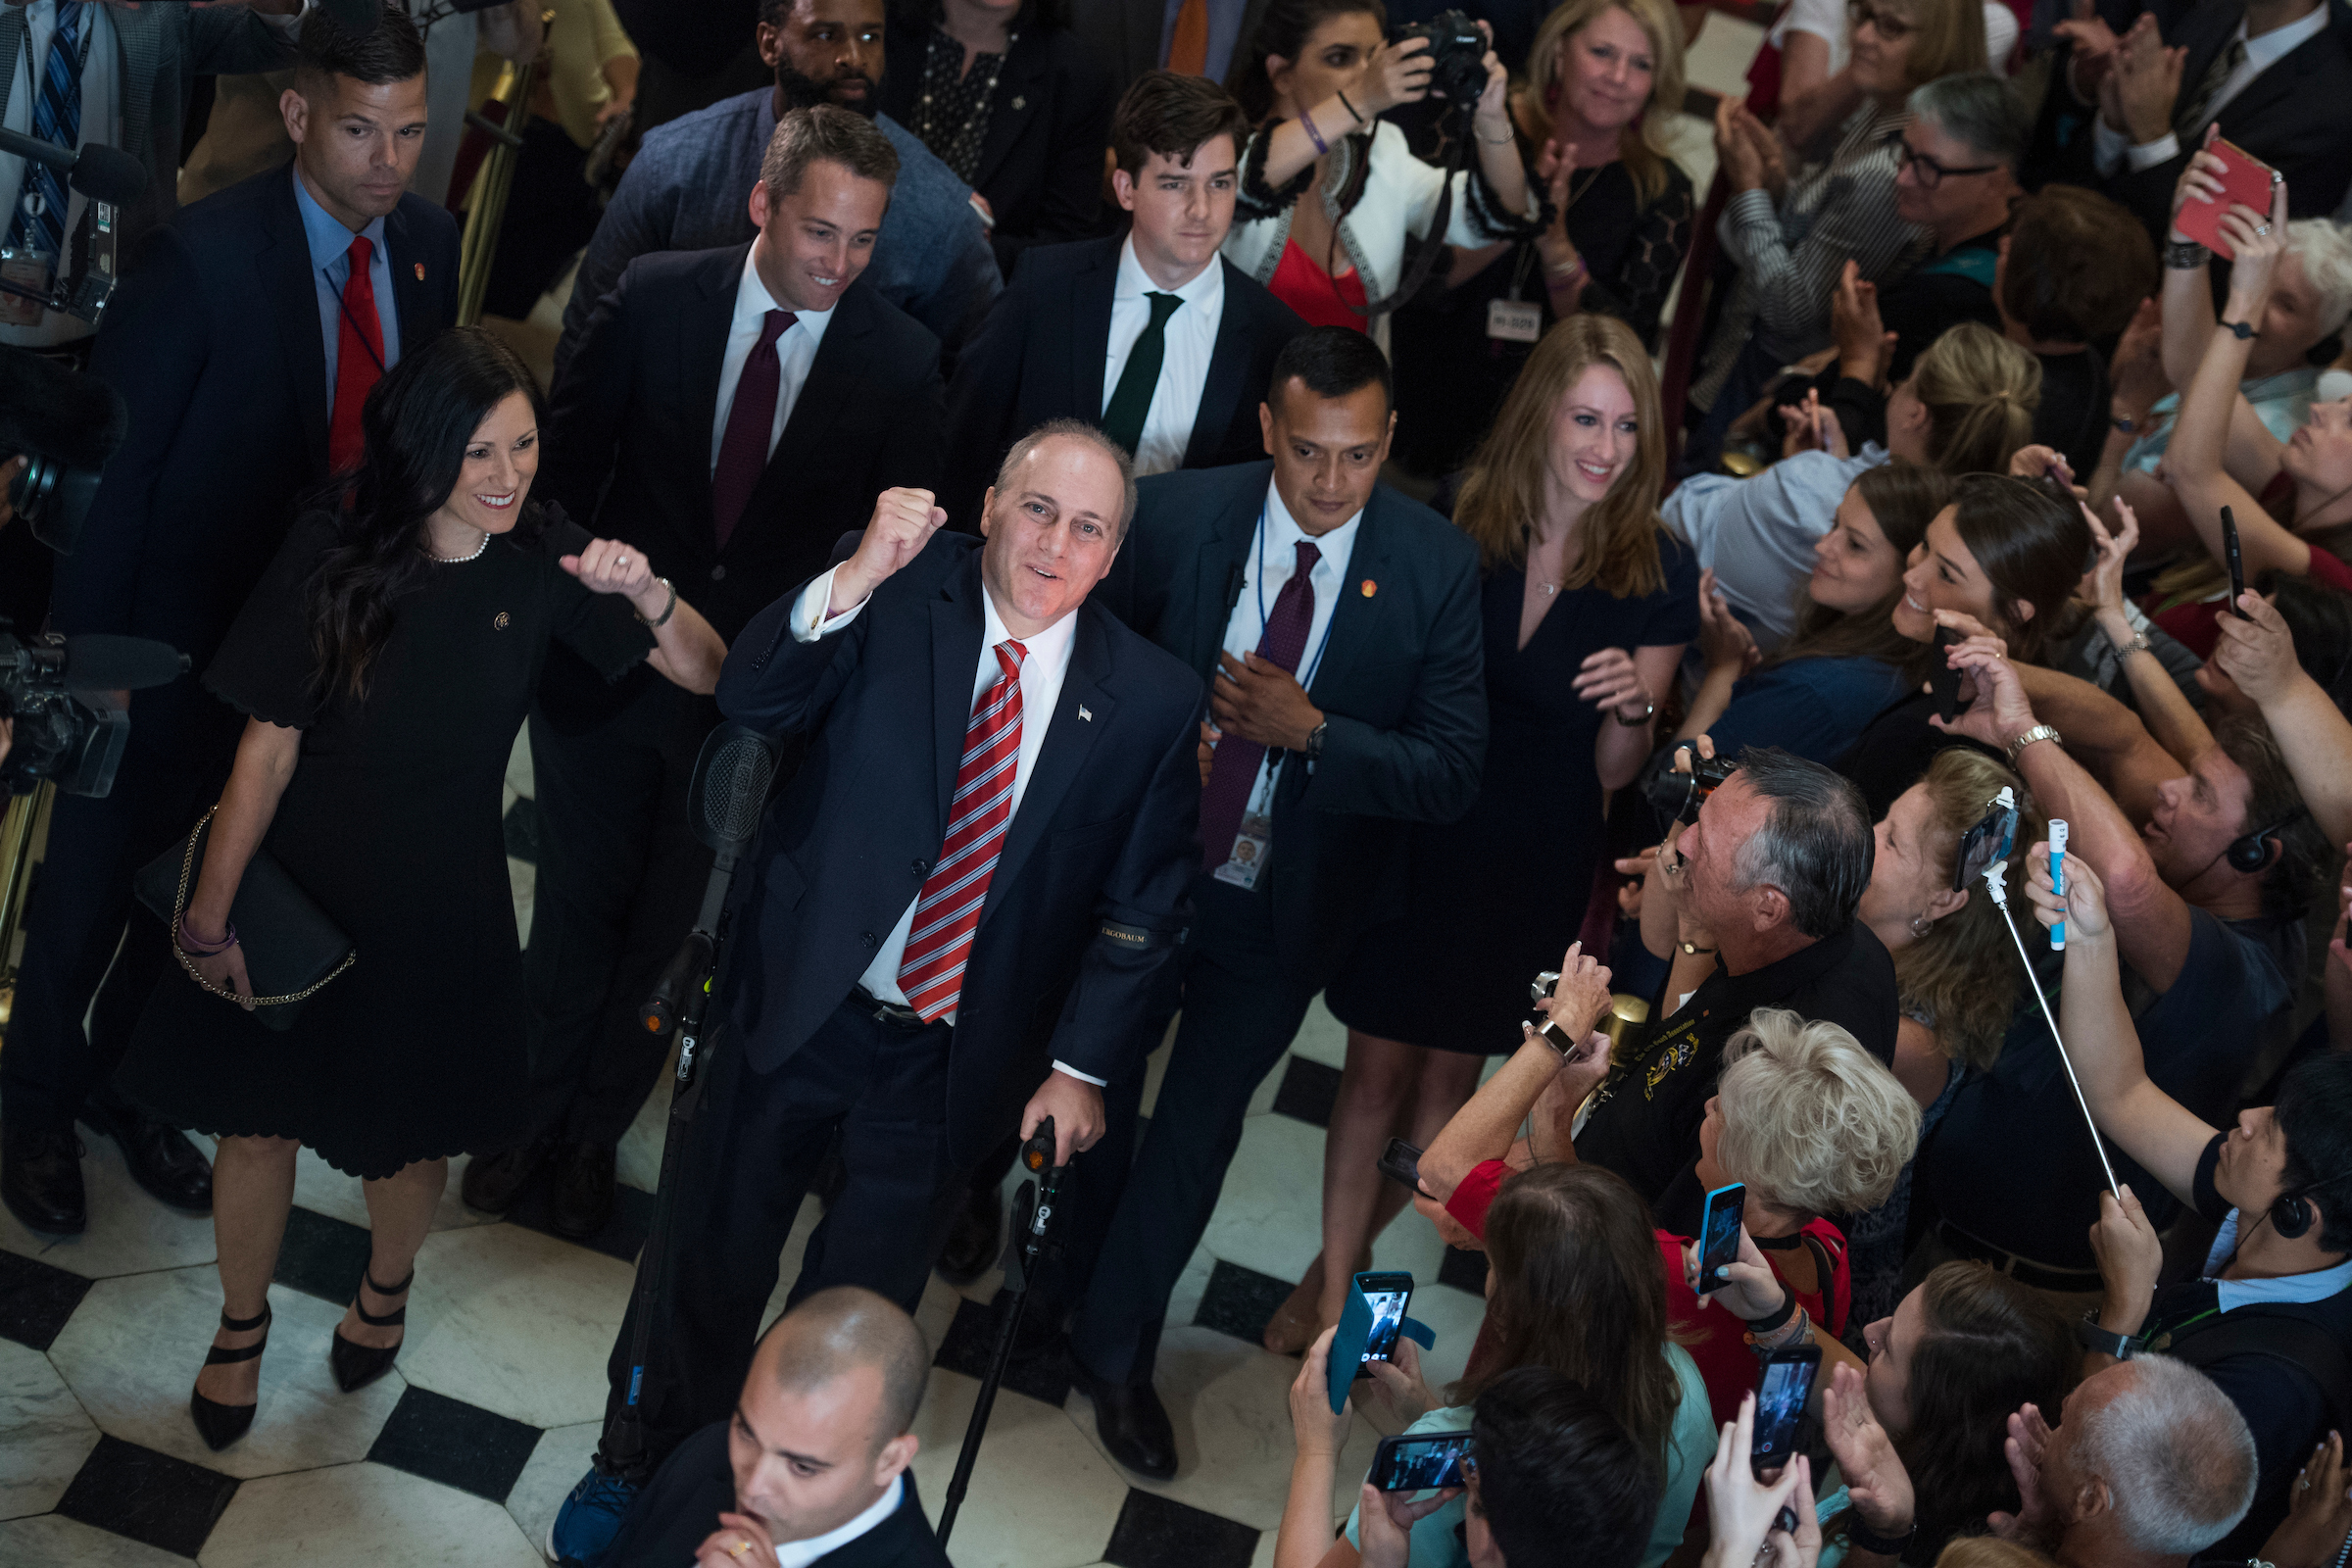 UNITED STATES - SEPTEMBER 28: House Majority Whip Steve Scalise, R-La., and his wife Jennifer, walk through the Capitol's Statuary Hall on September 28, 2017, his first day back to the Hill after being injured in the shooting at the Republican baseball practice in June. (Photo By Tom Williams/CQ Roll Call)